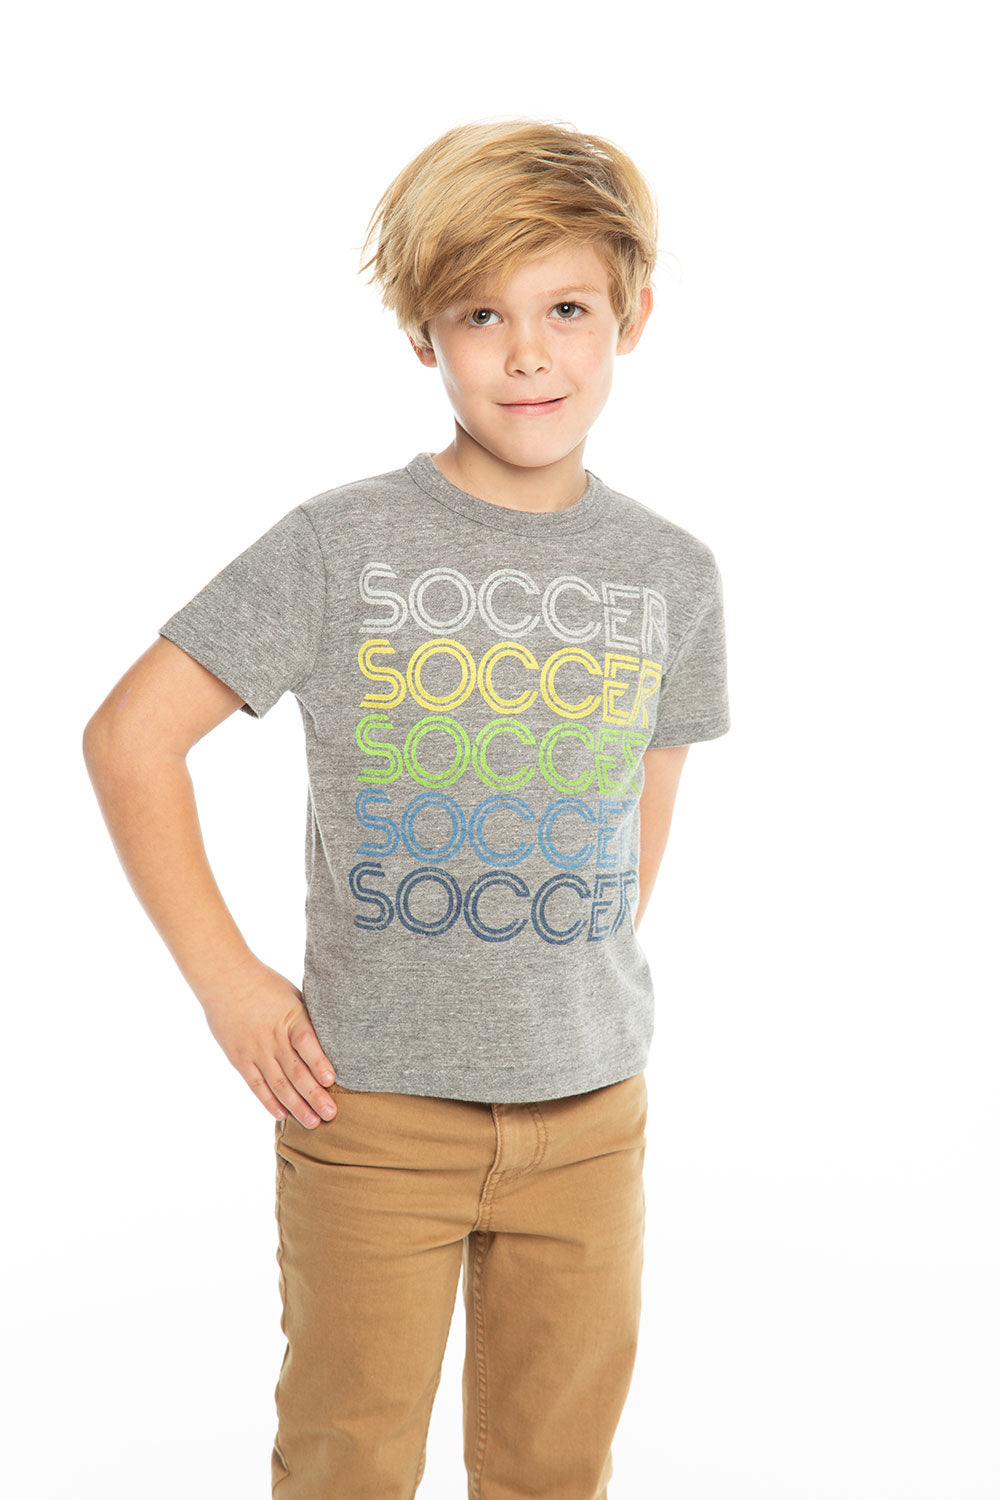 Soccer!!, BOYS, chaserbrand.com,chaser clothing,chaser apparel,chaser los angeles